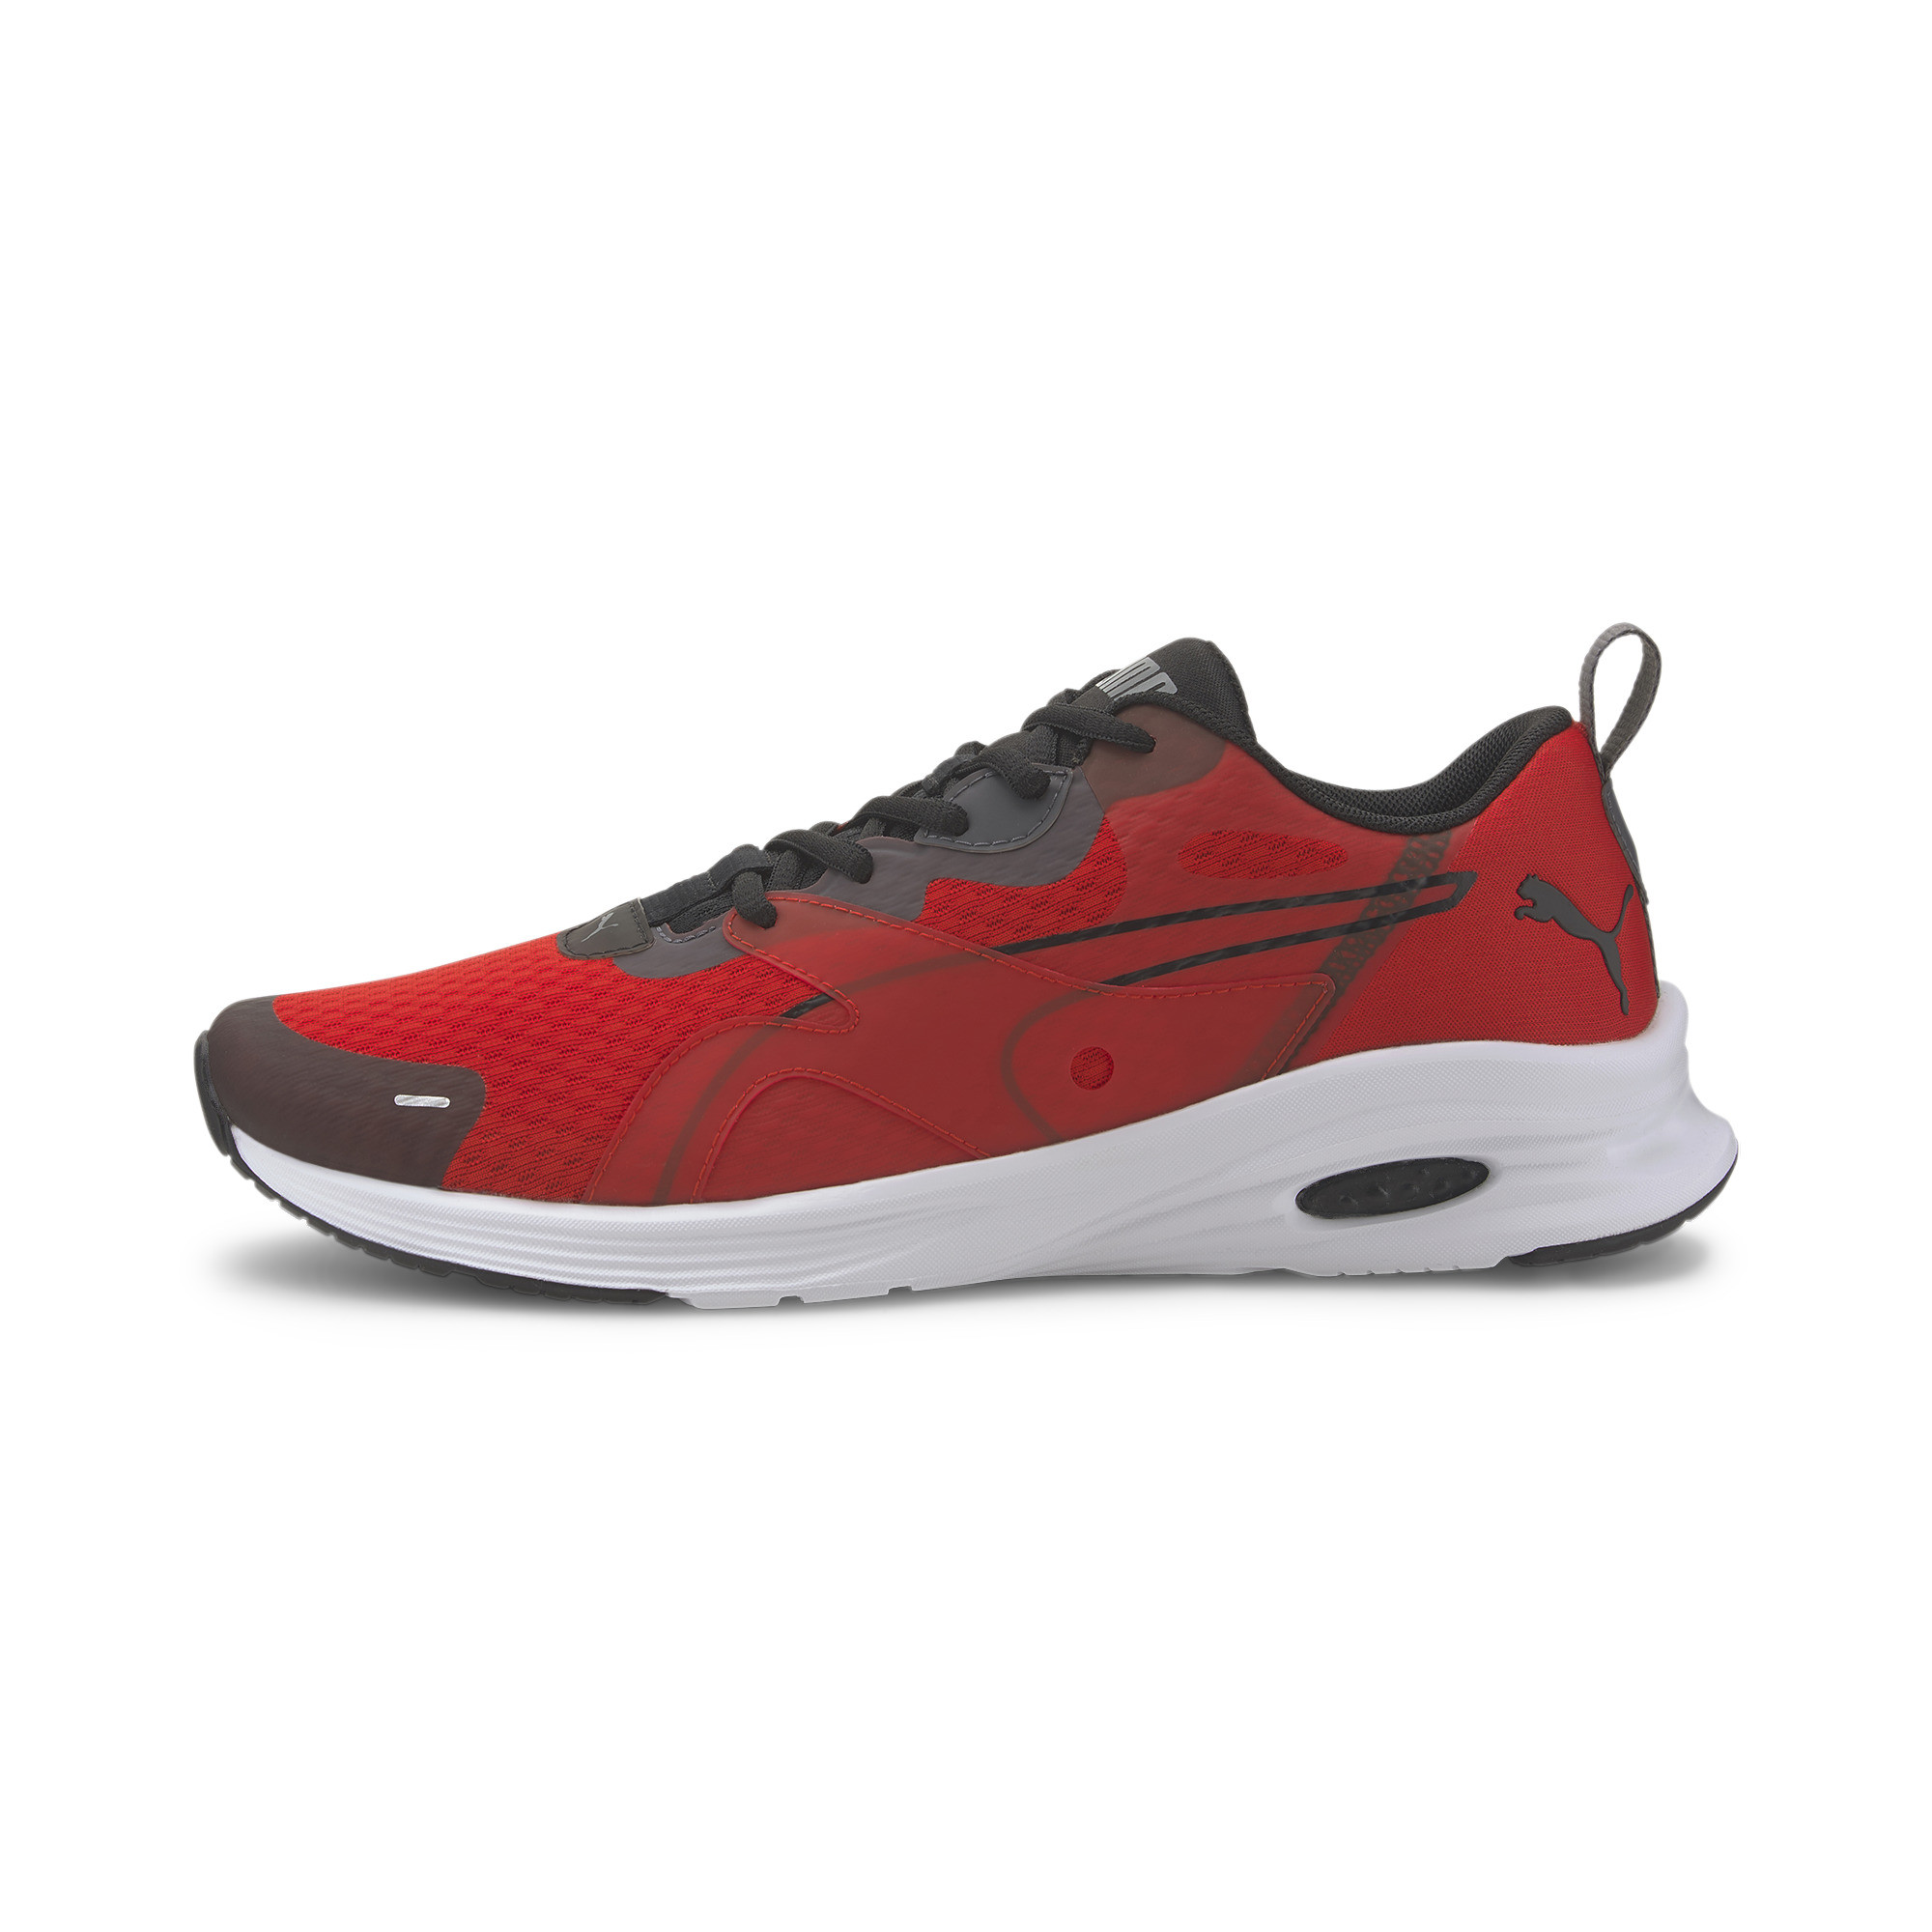 PUMA-Men-039-s-HYBRID-Fuego-Running-Shoes thumbnail 36